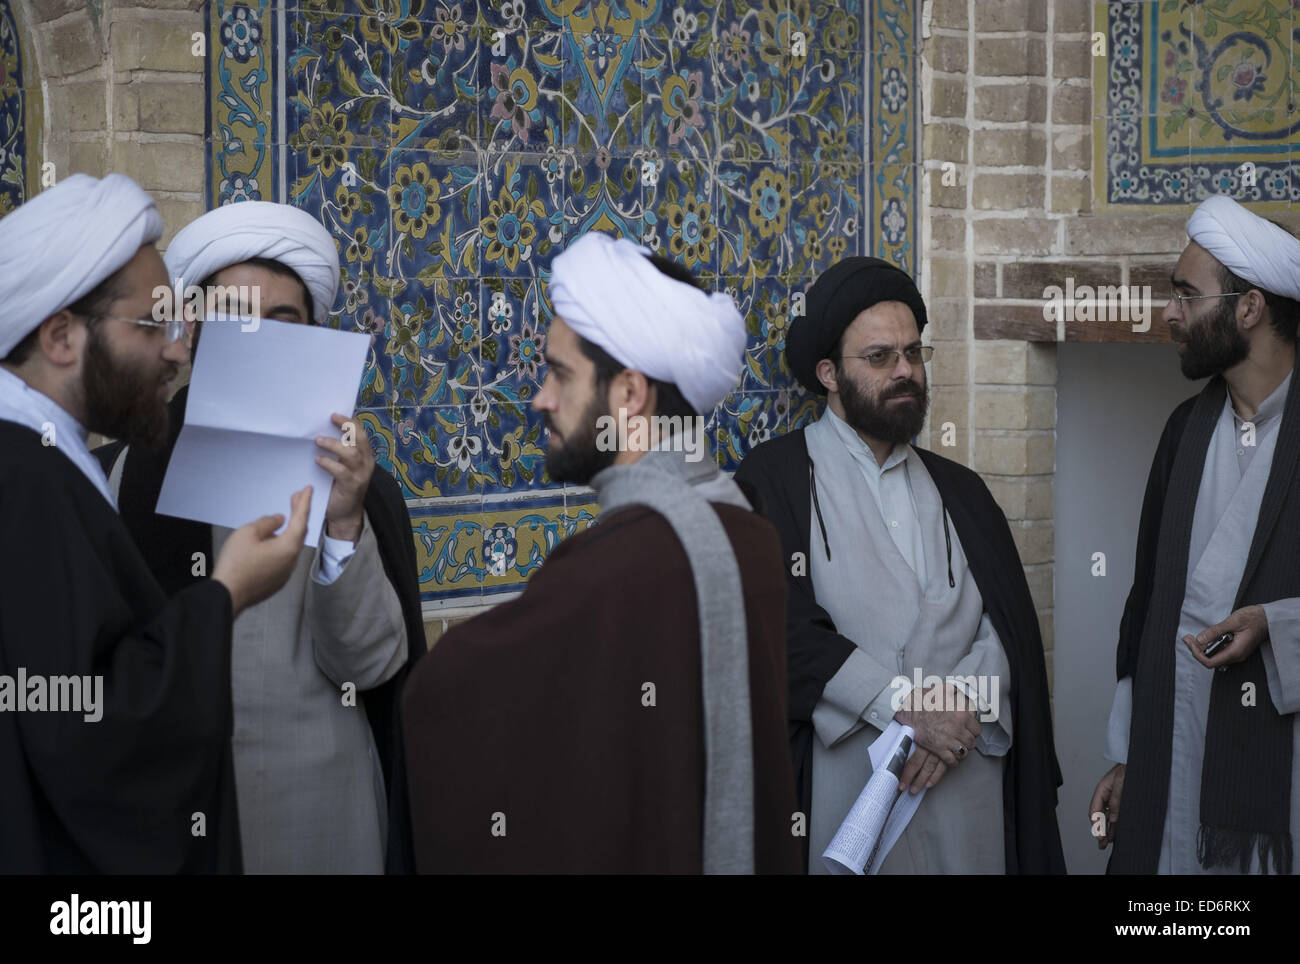 Qom, Iran. 30th Dec, 2014. Iranian clerics talk with each other during a rally to mark December 30, 2009 demonstration - Stock Image